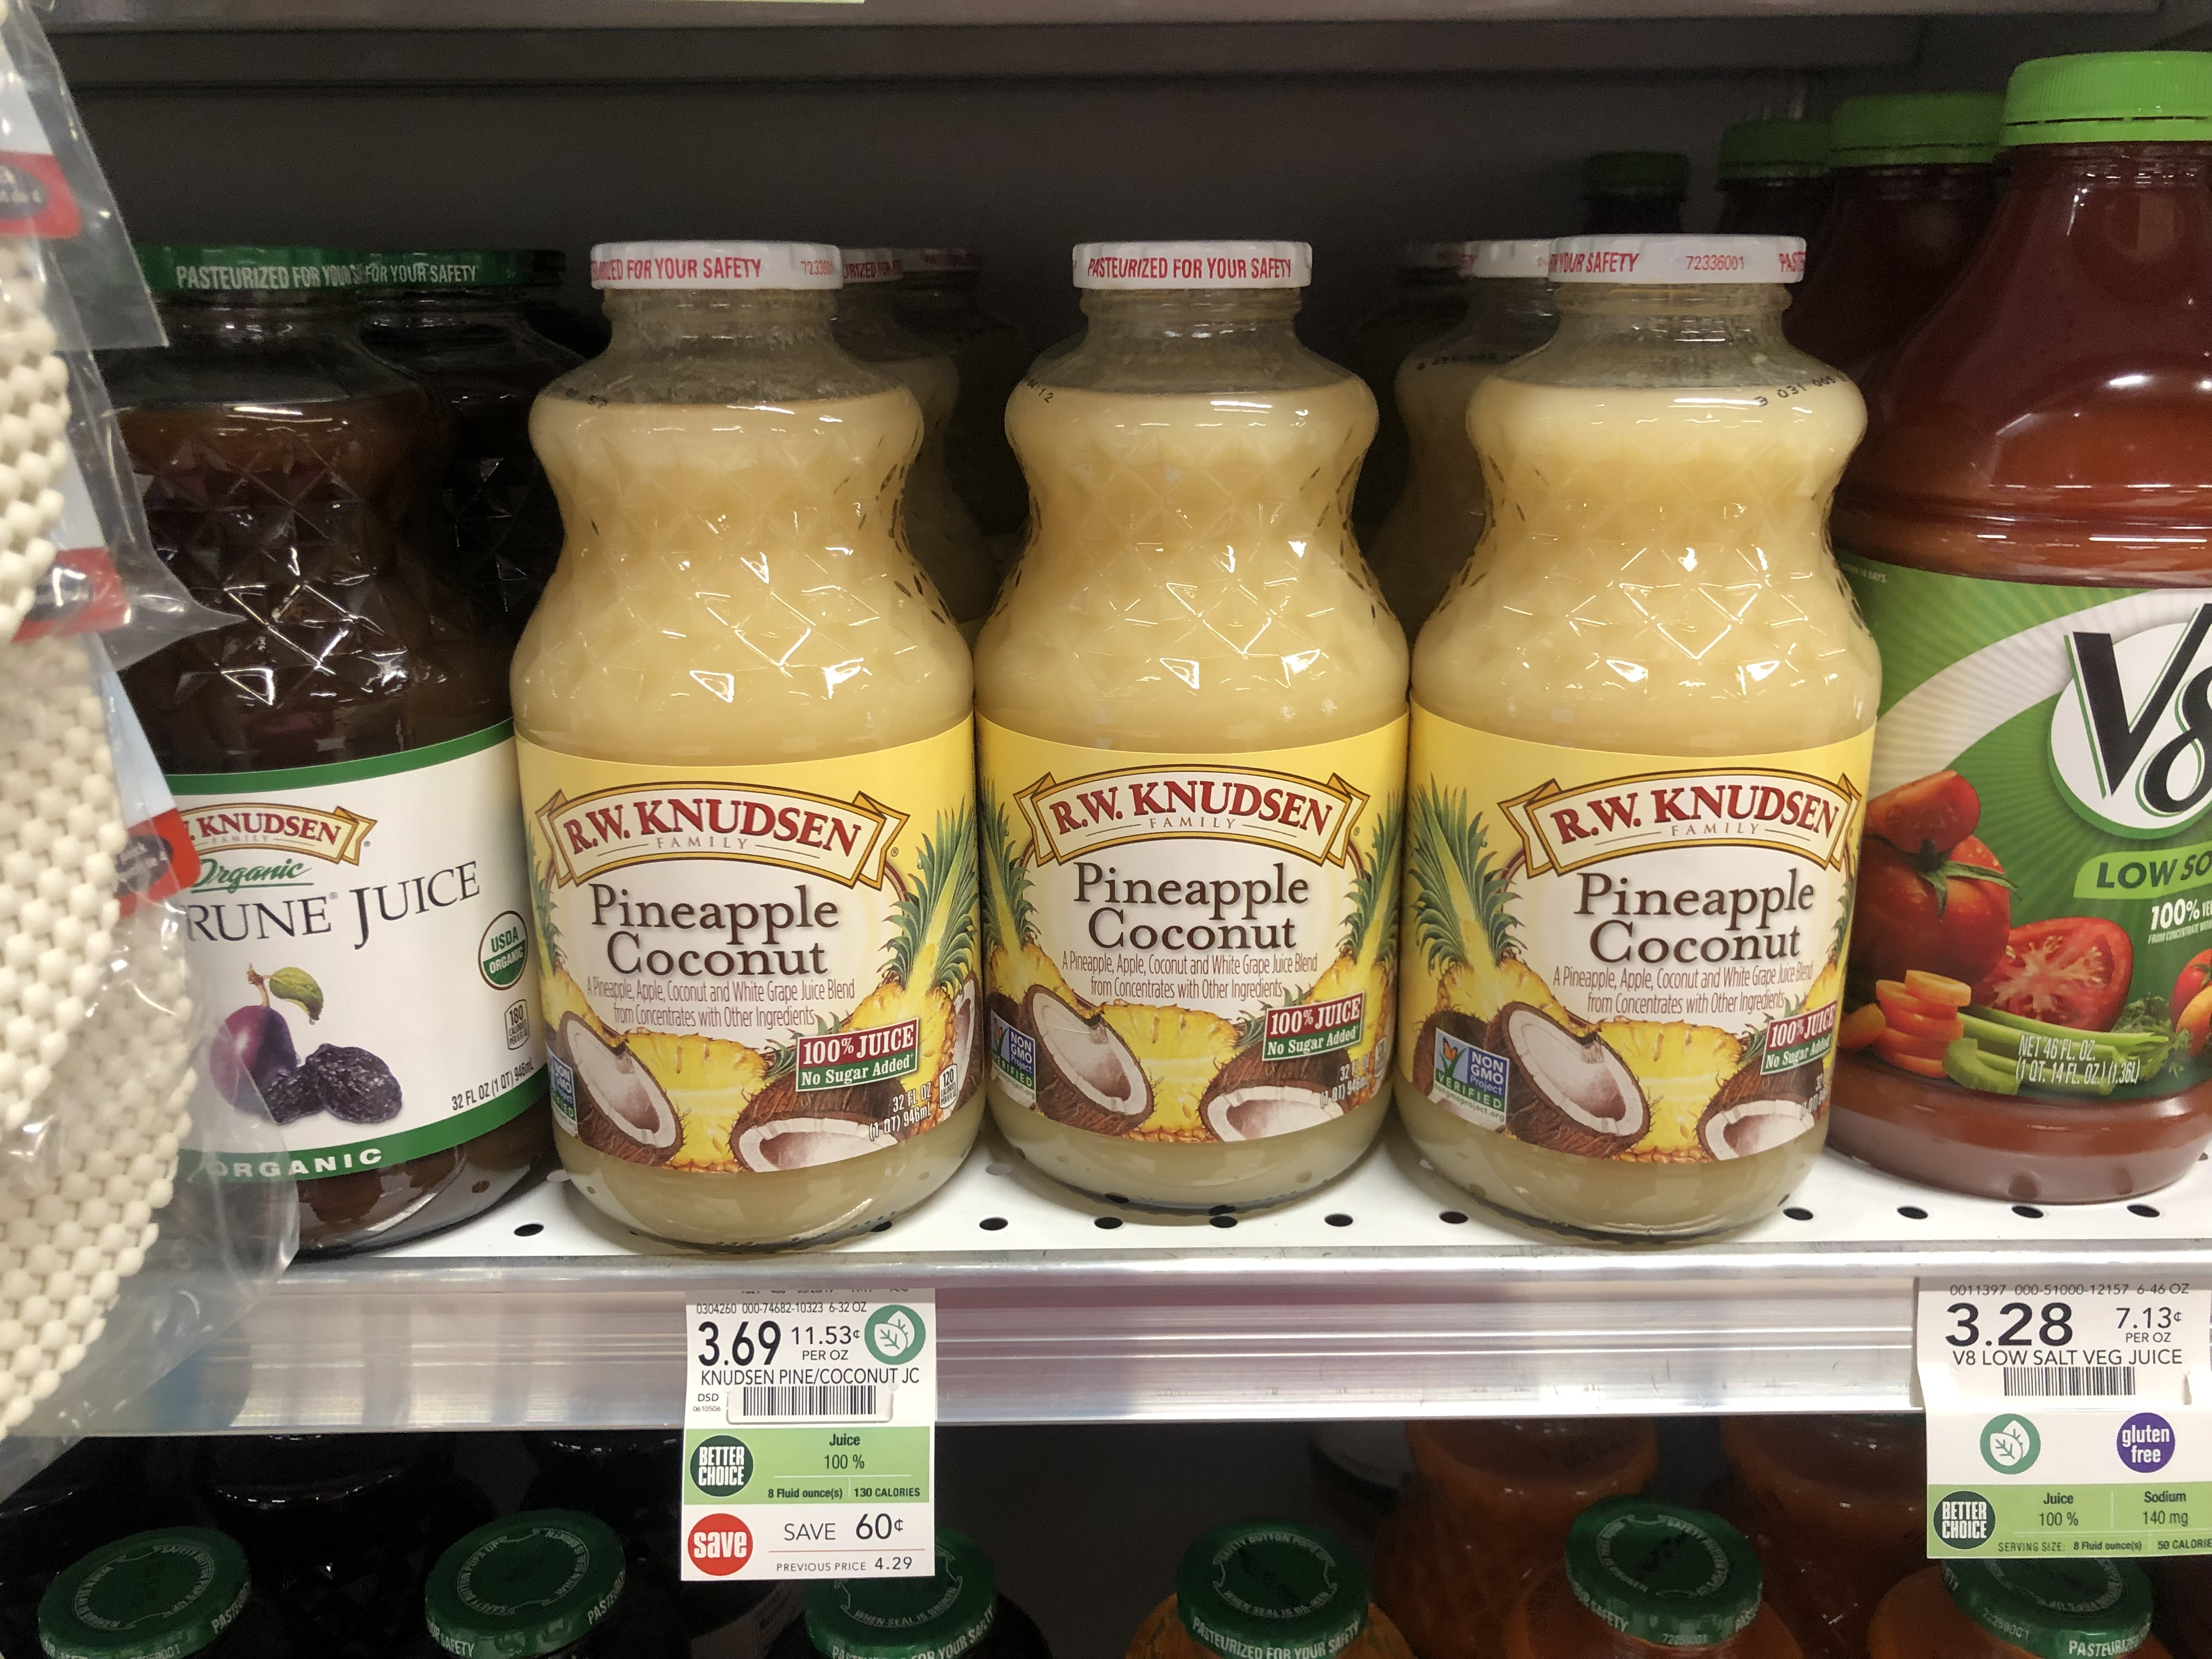 R.W. Knudsen Juice Only $2.69 At Publix 1